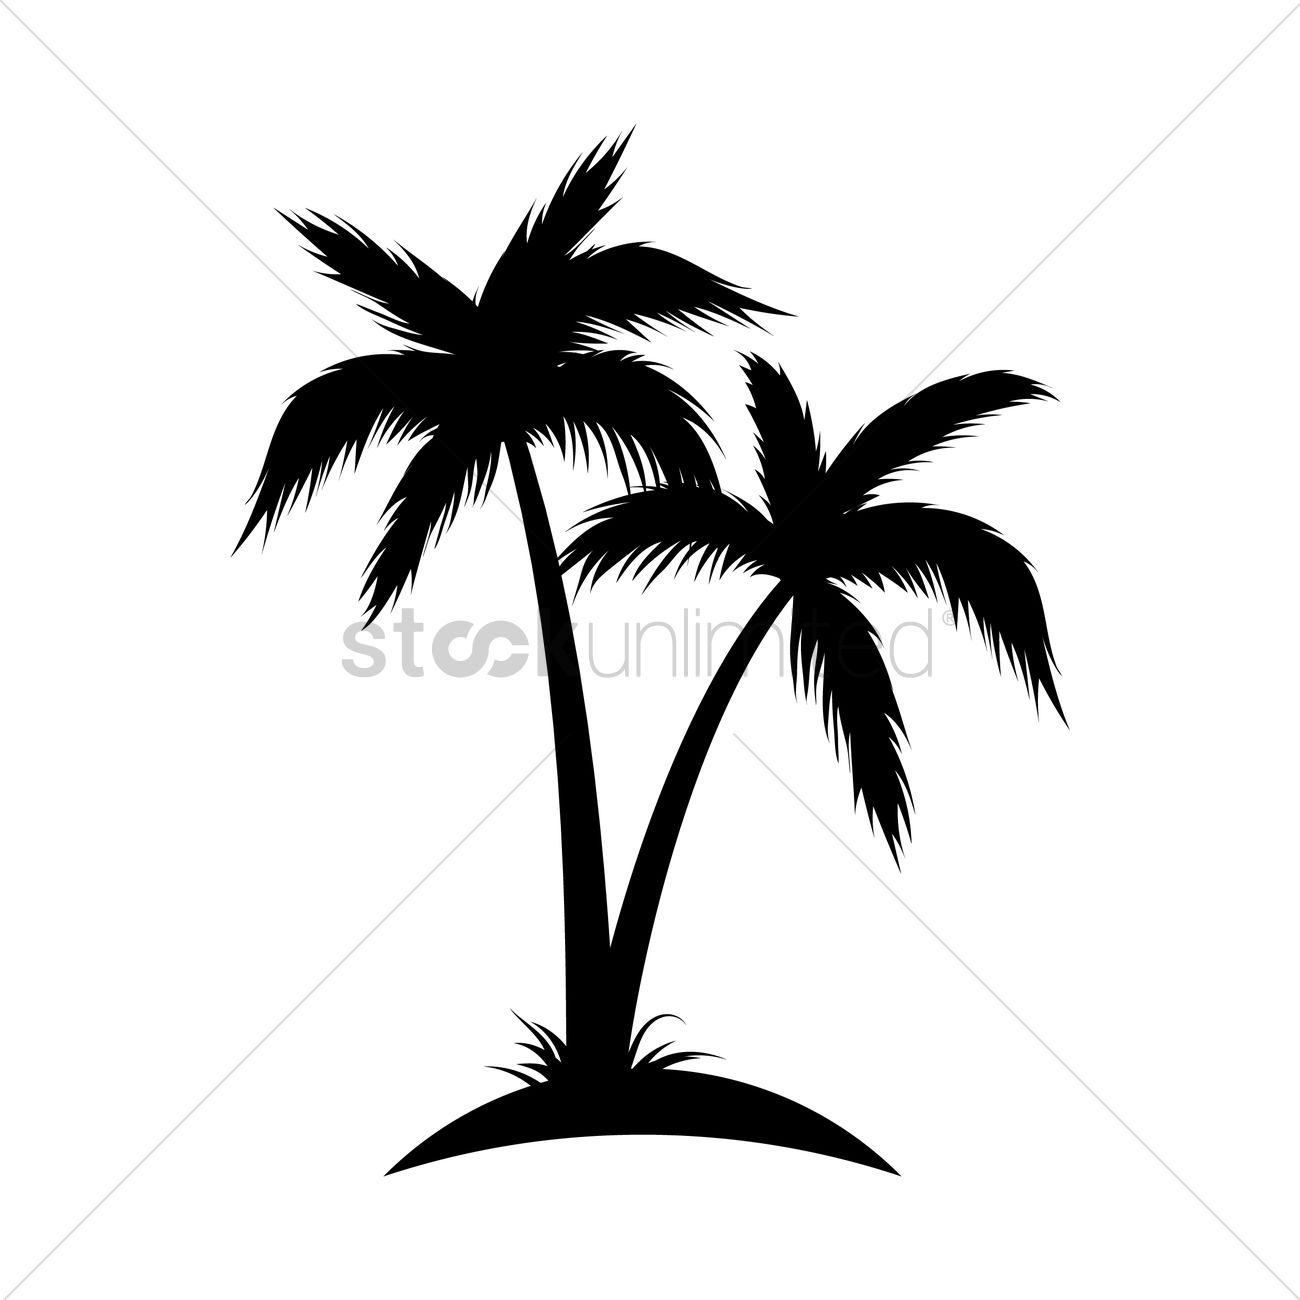 Silhouette Of Coconut Tree Vector Image 1902987